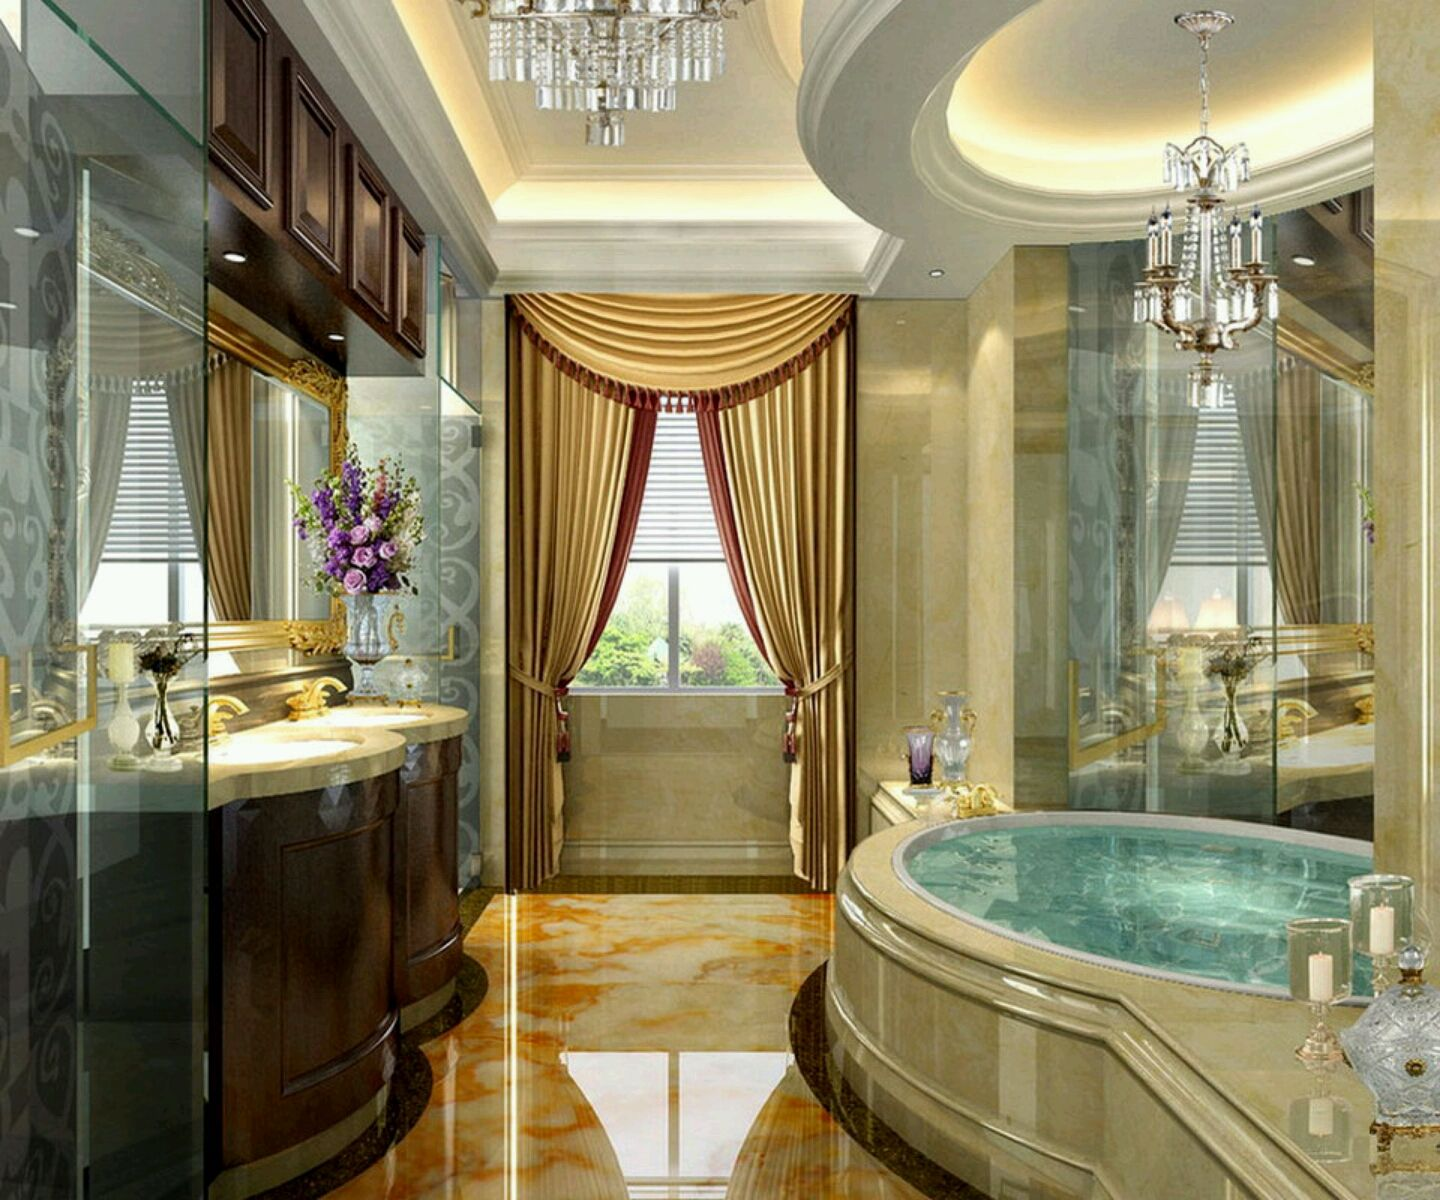 Luxury Bathroom Pictures New Luxury Bathroom  Luxury Modern Bathrooms Designs Decoration Ideas Inspiration